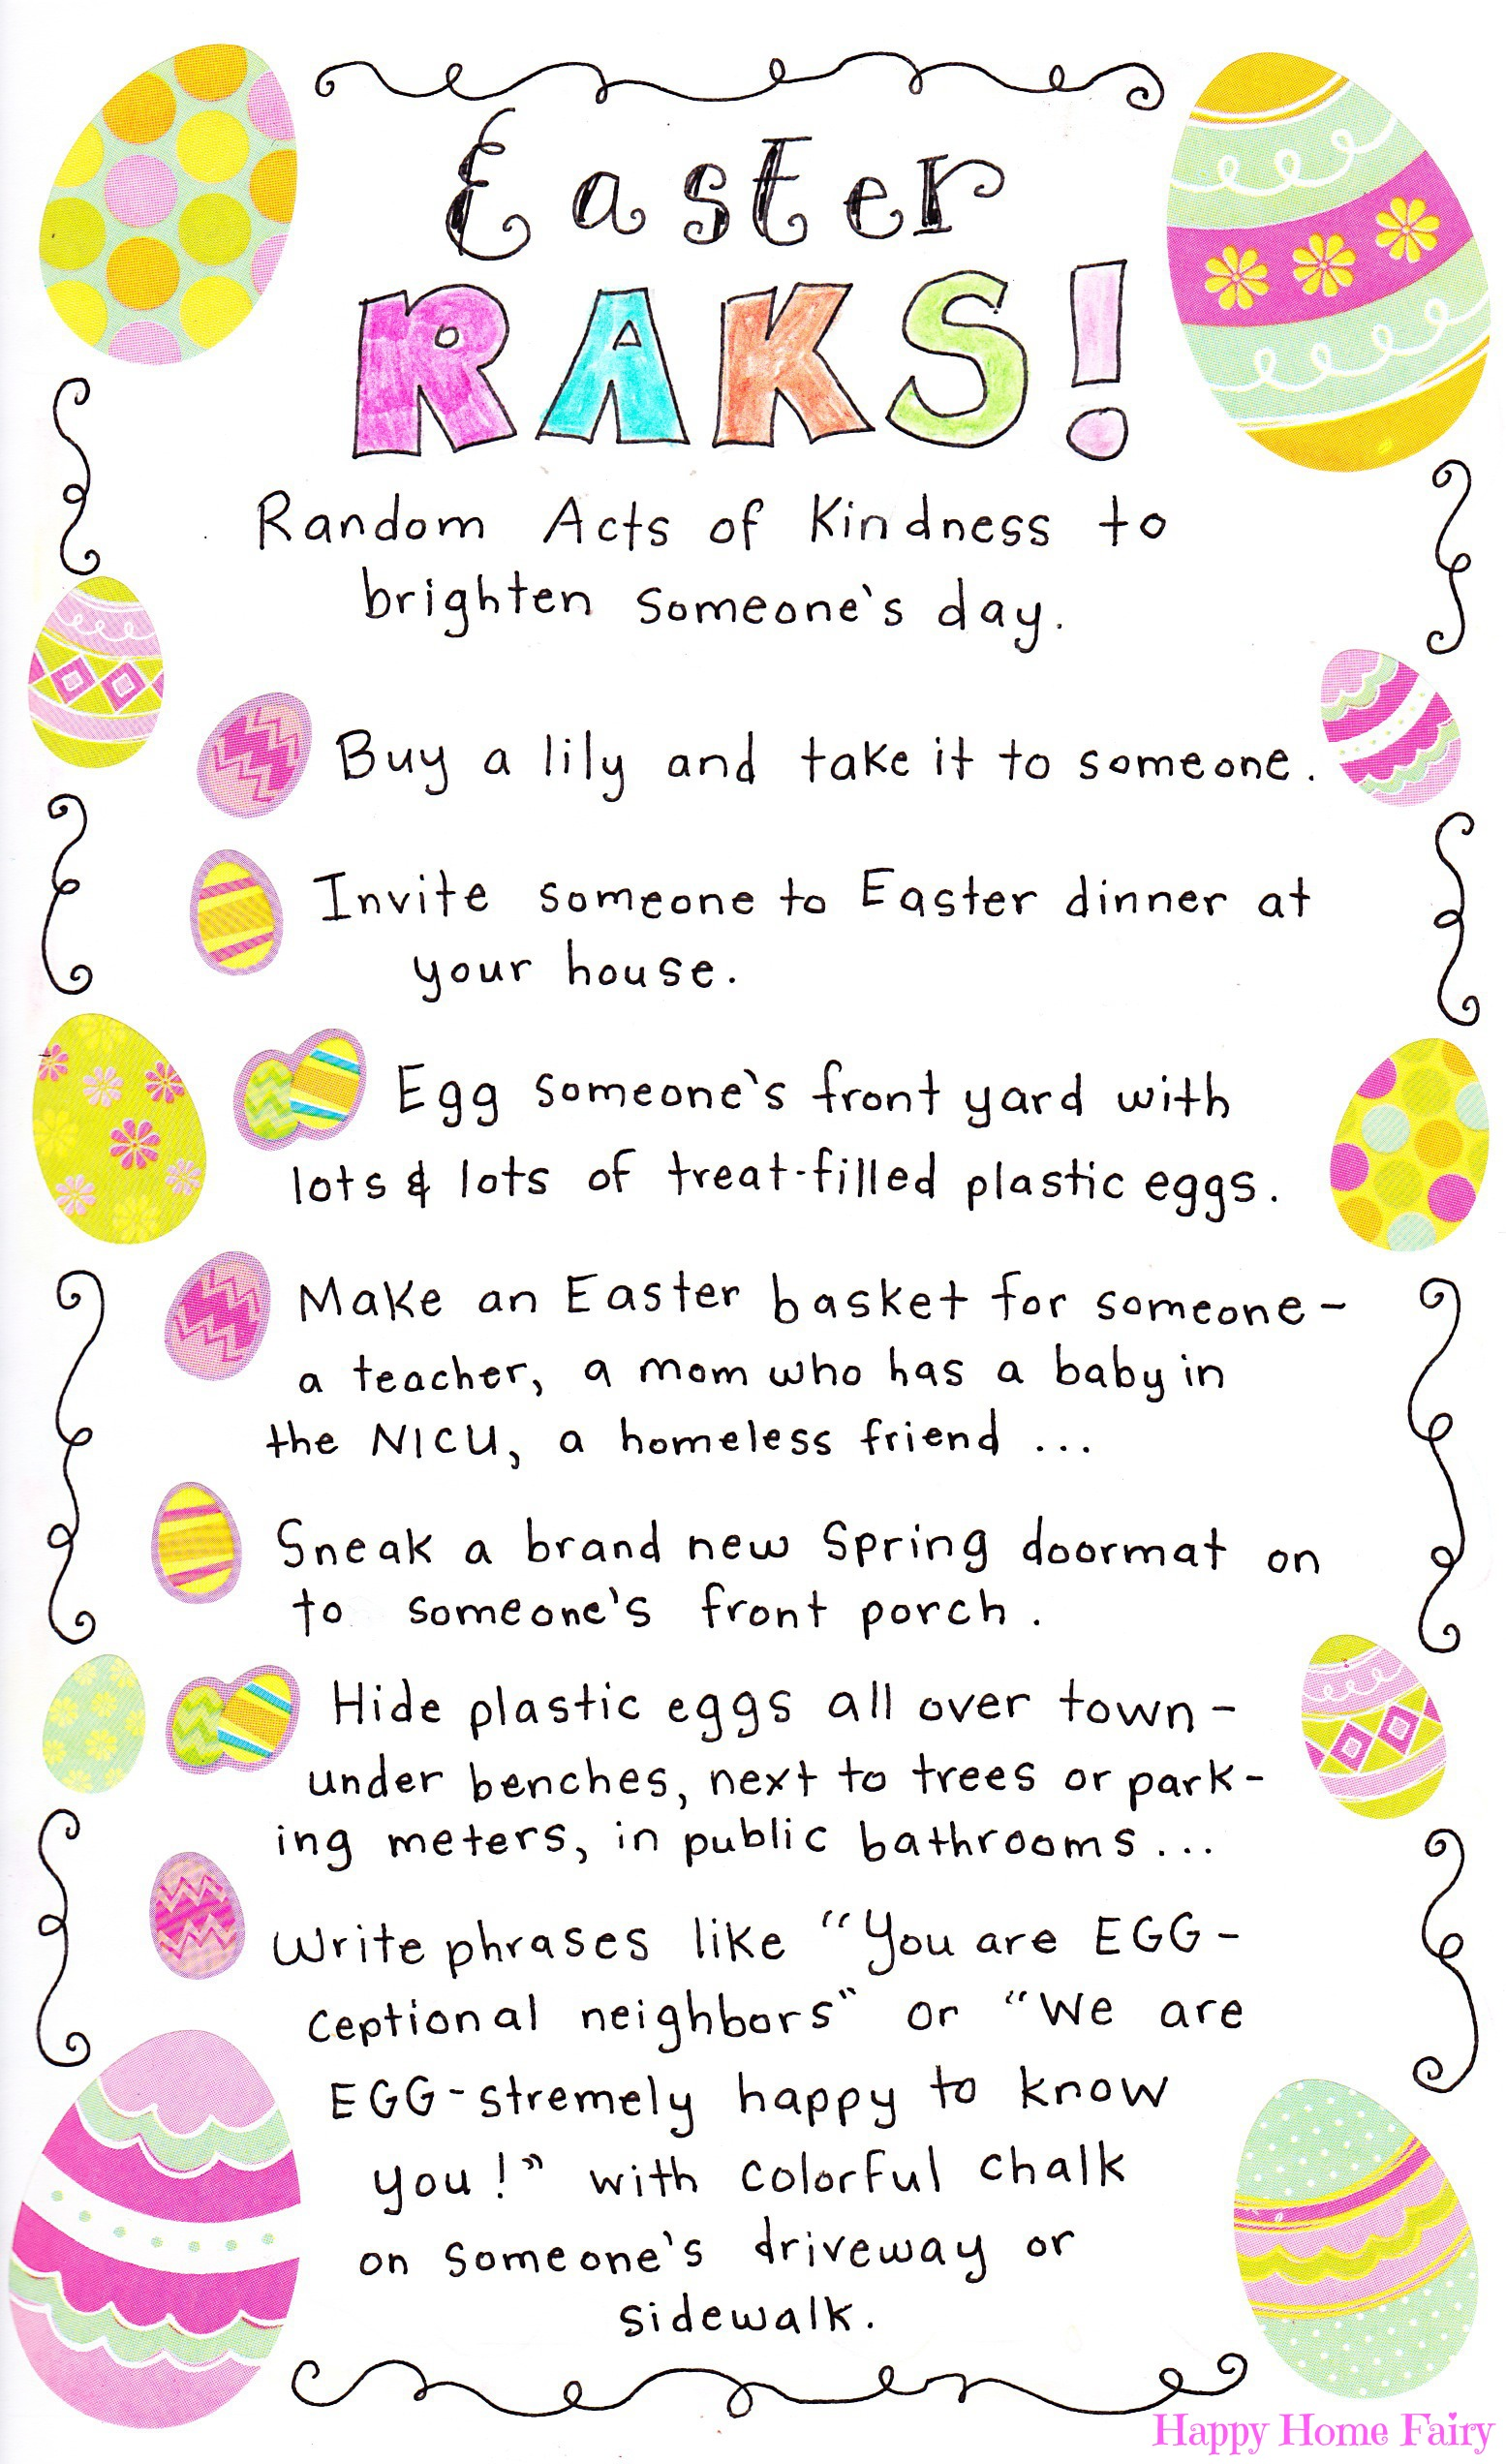 Youtube Easter Songs: Random Acts Of Kindness For Easter